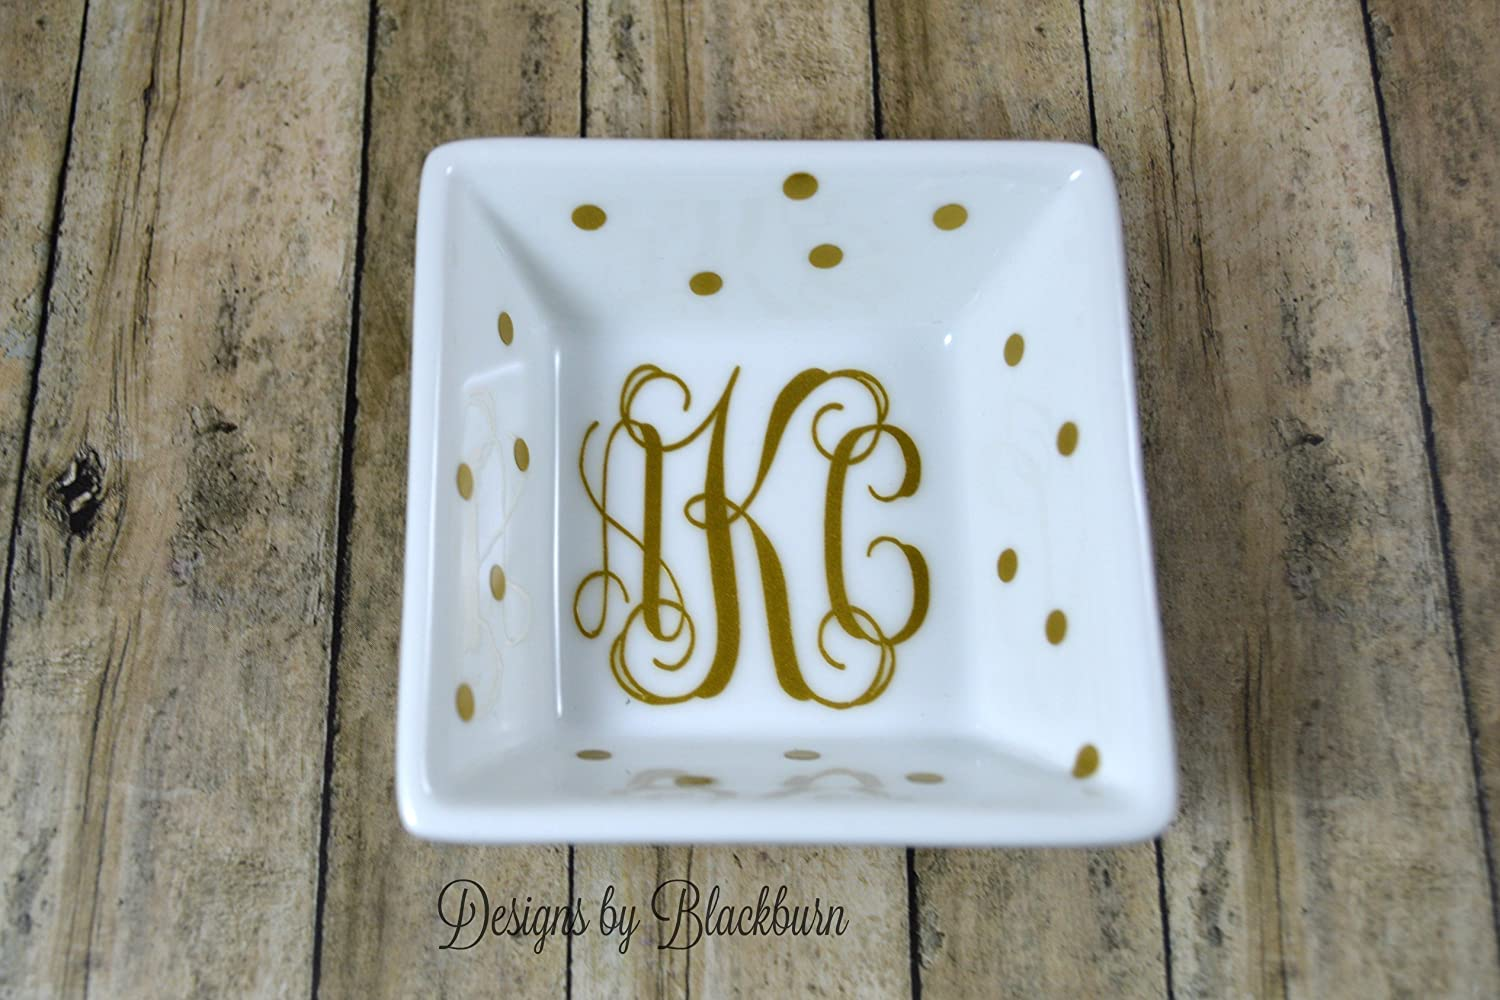 Monogram Jewelry Dish/Ring Dish with Polka Dots/Bridesmaid Gift/Mothers Day Gift for Her